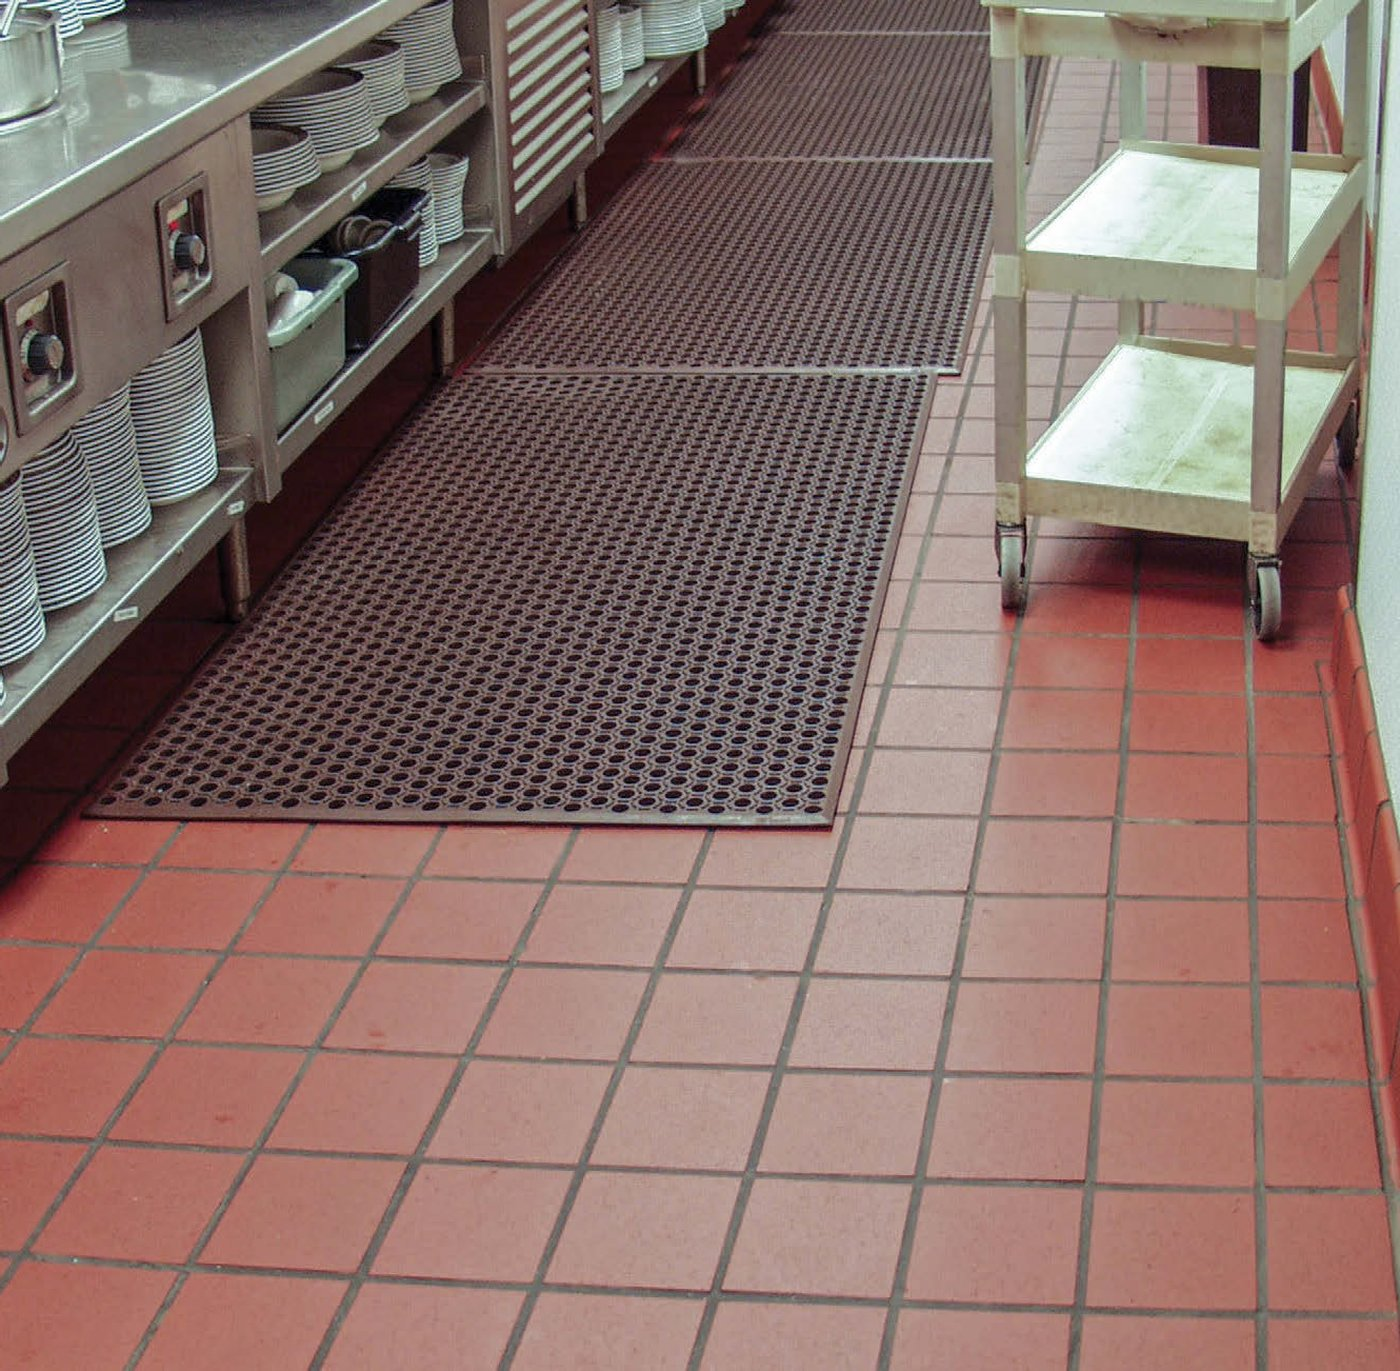 Tiling and Grouting Restaurant Commercial Kitchens